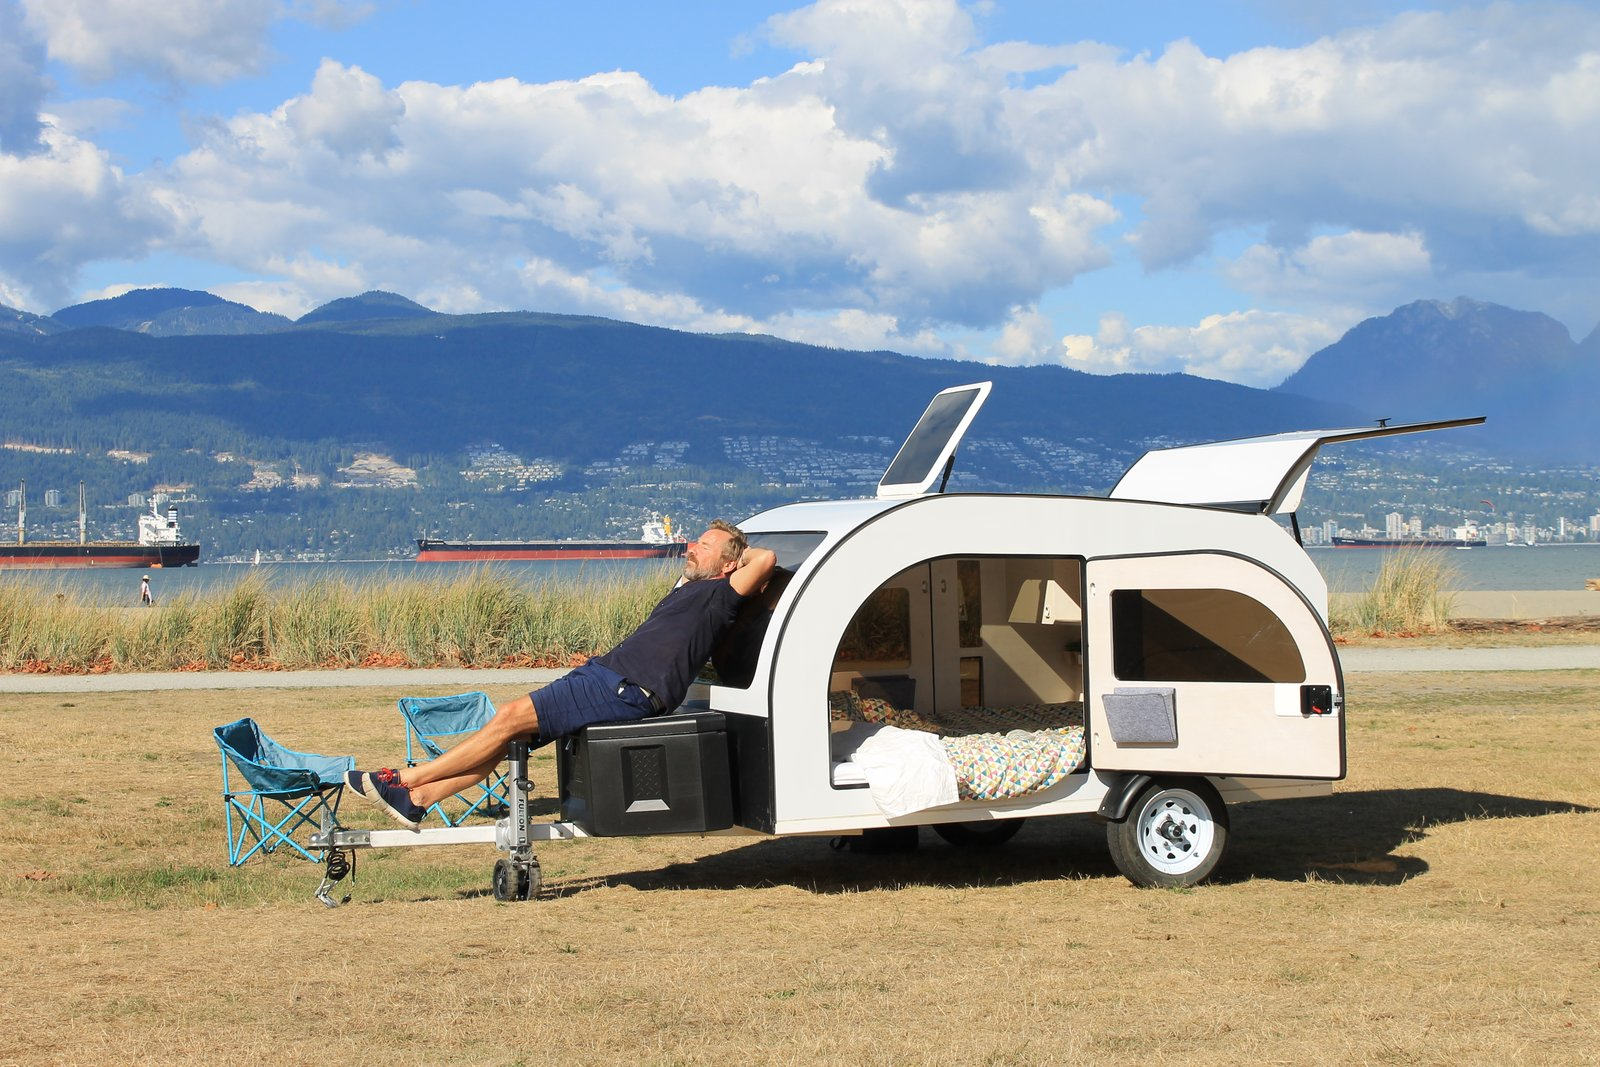 This Tiny Teardrop-Shaped Trailer Is Ready For Big Adventures